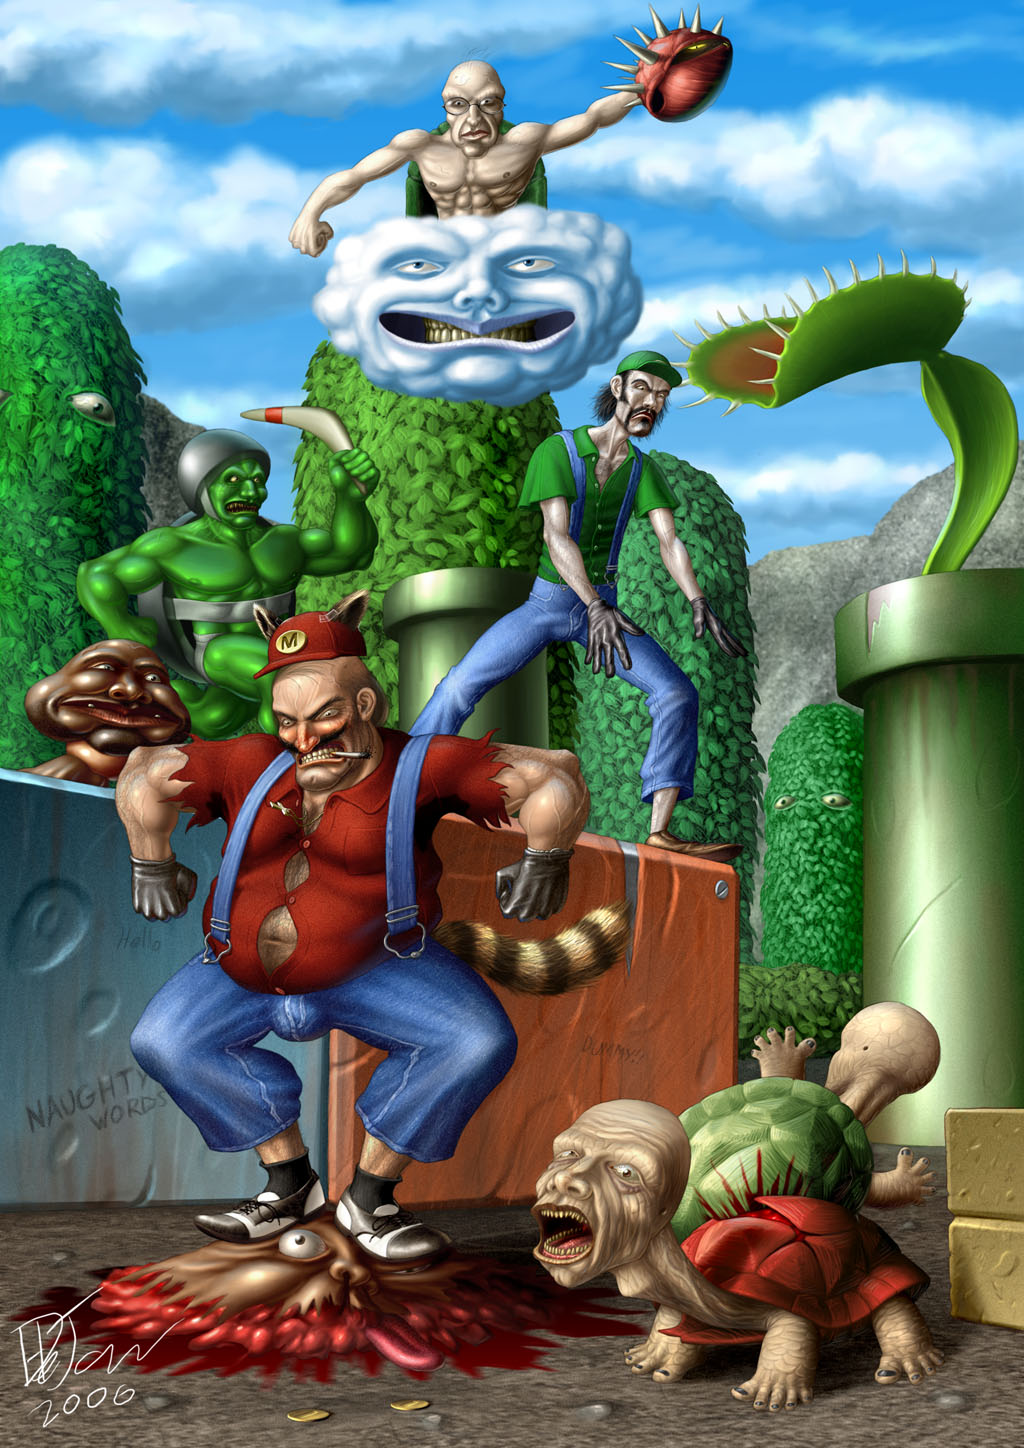 JasonCross.com - Disturbing Realistic Mario Bros Painting